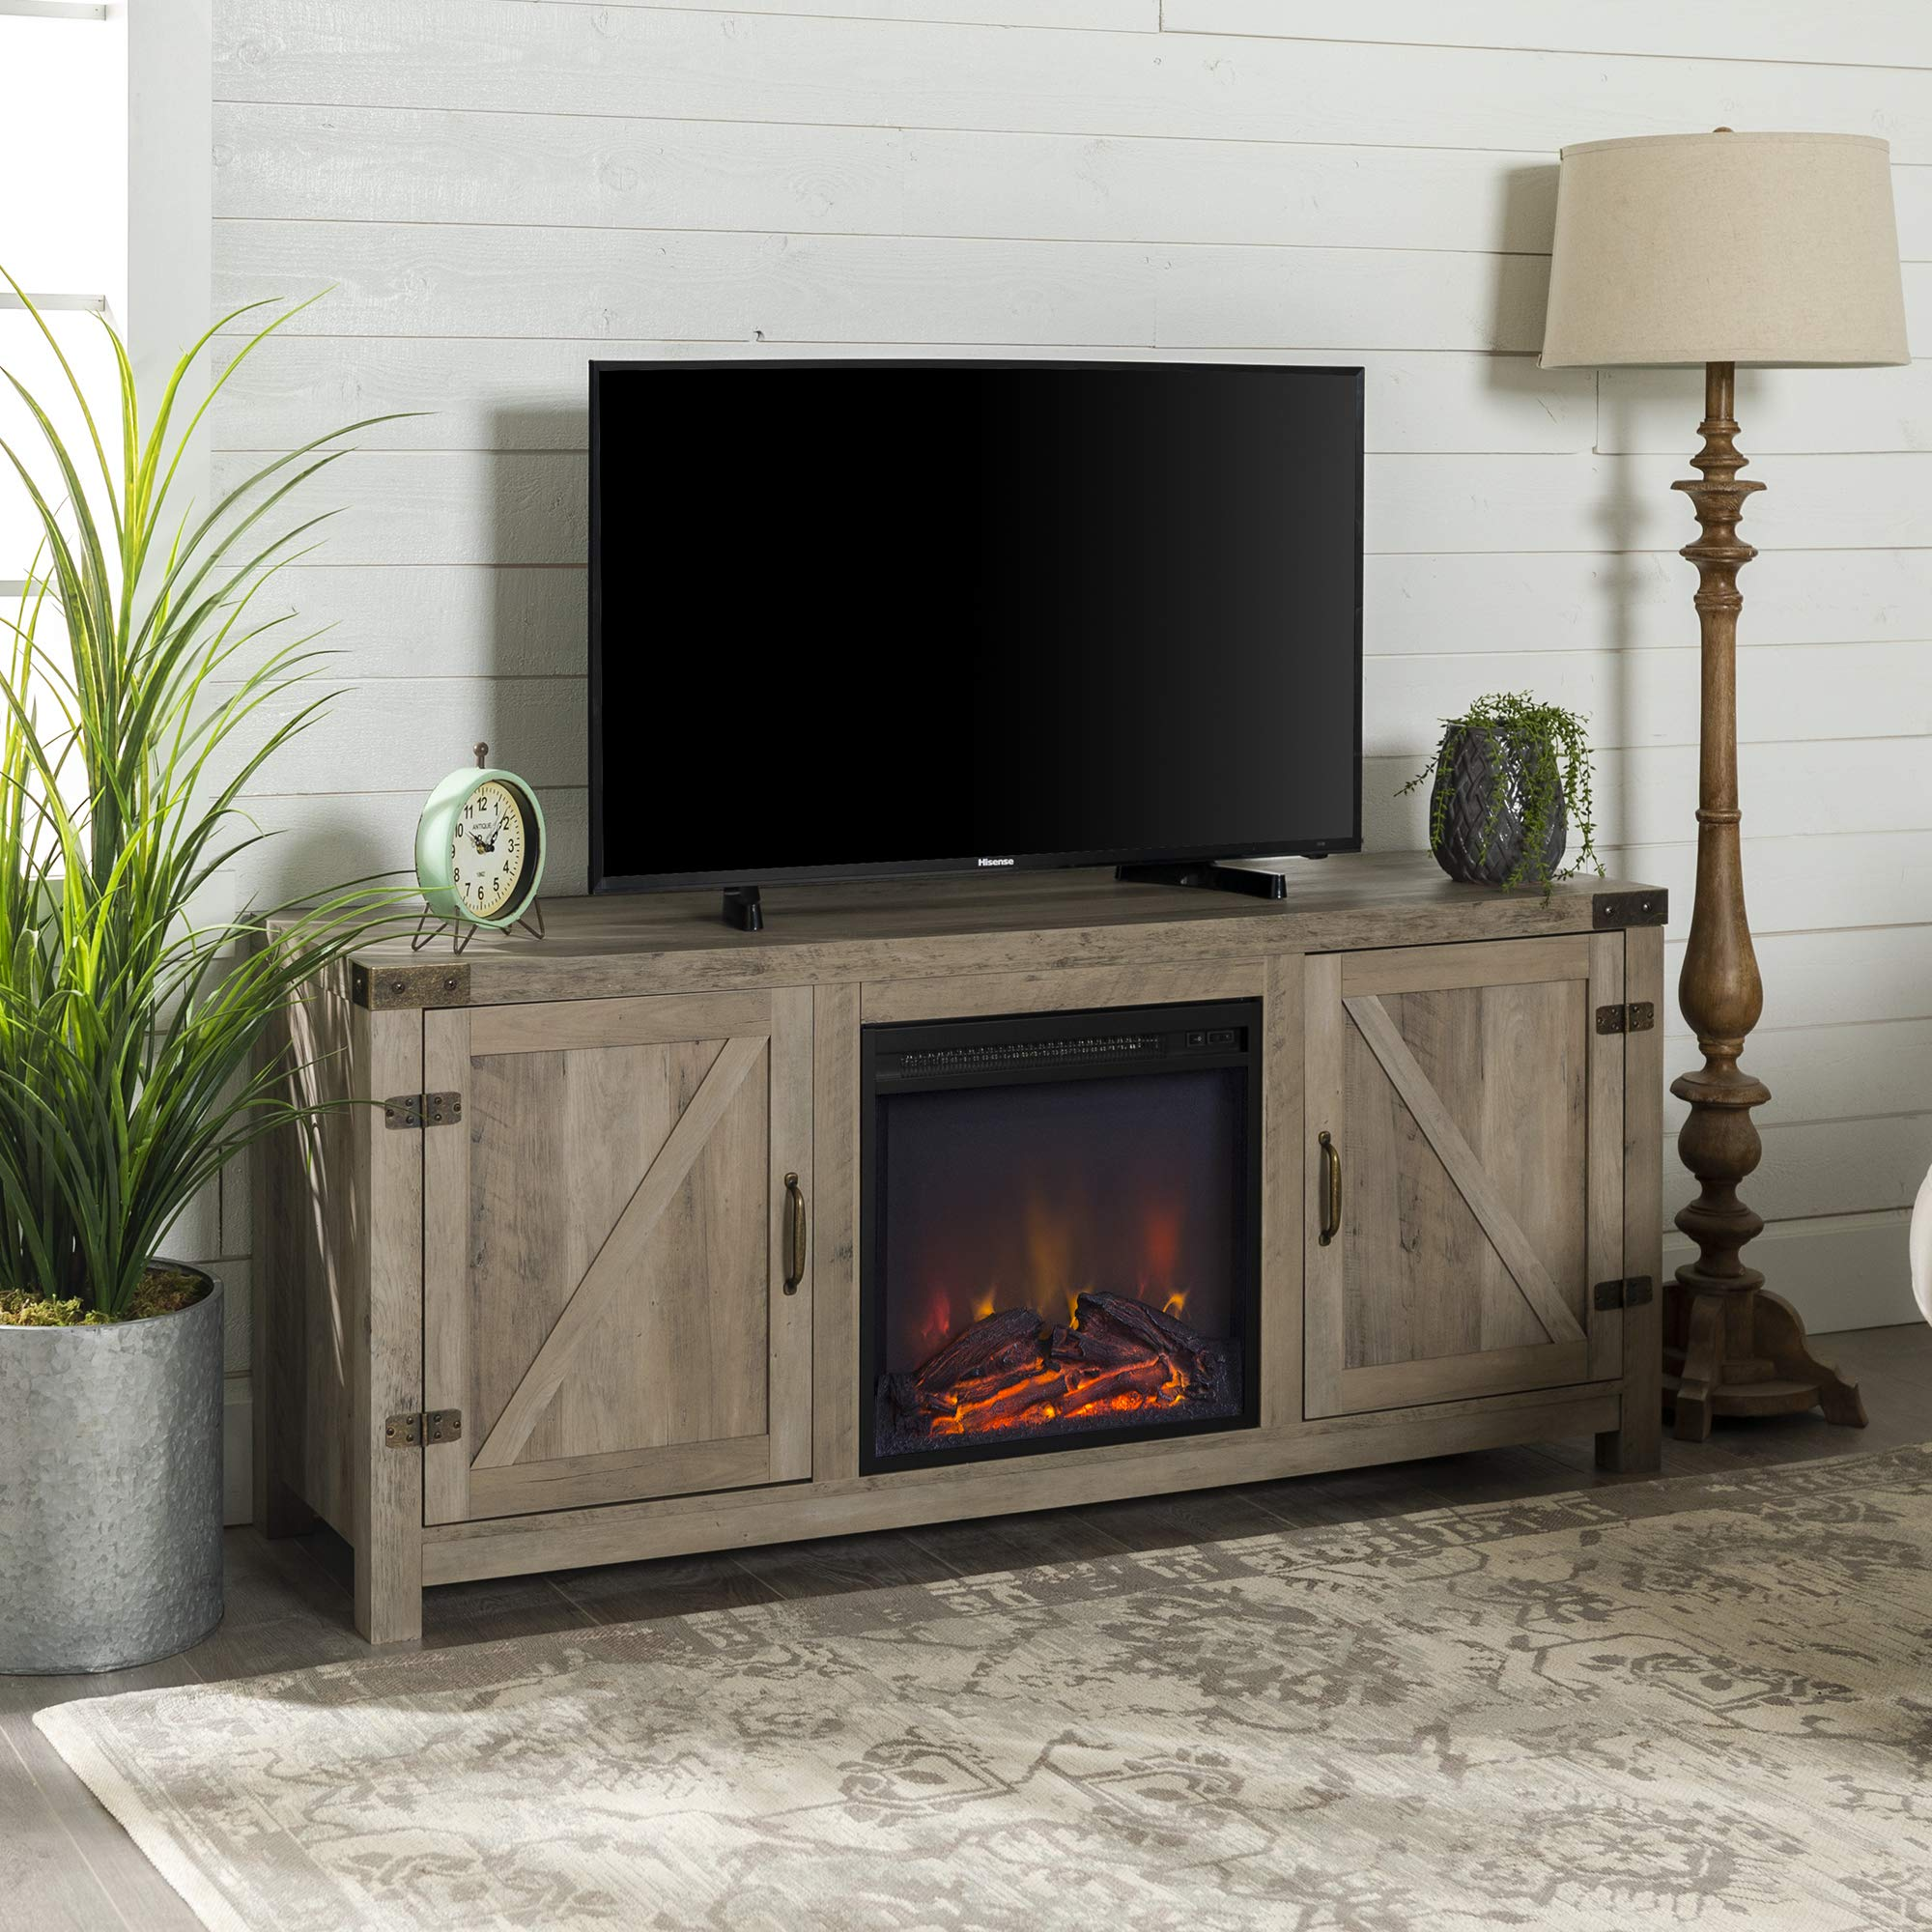 Home Accent Furnishings New 58 Inch Barn Door Fireplace Television Stand in Grey Wash Color by Home Accent Furnishings